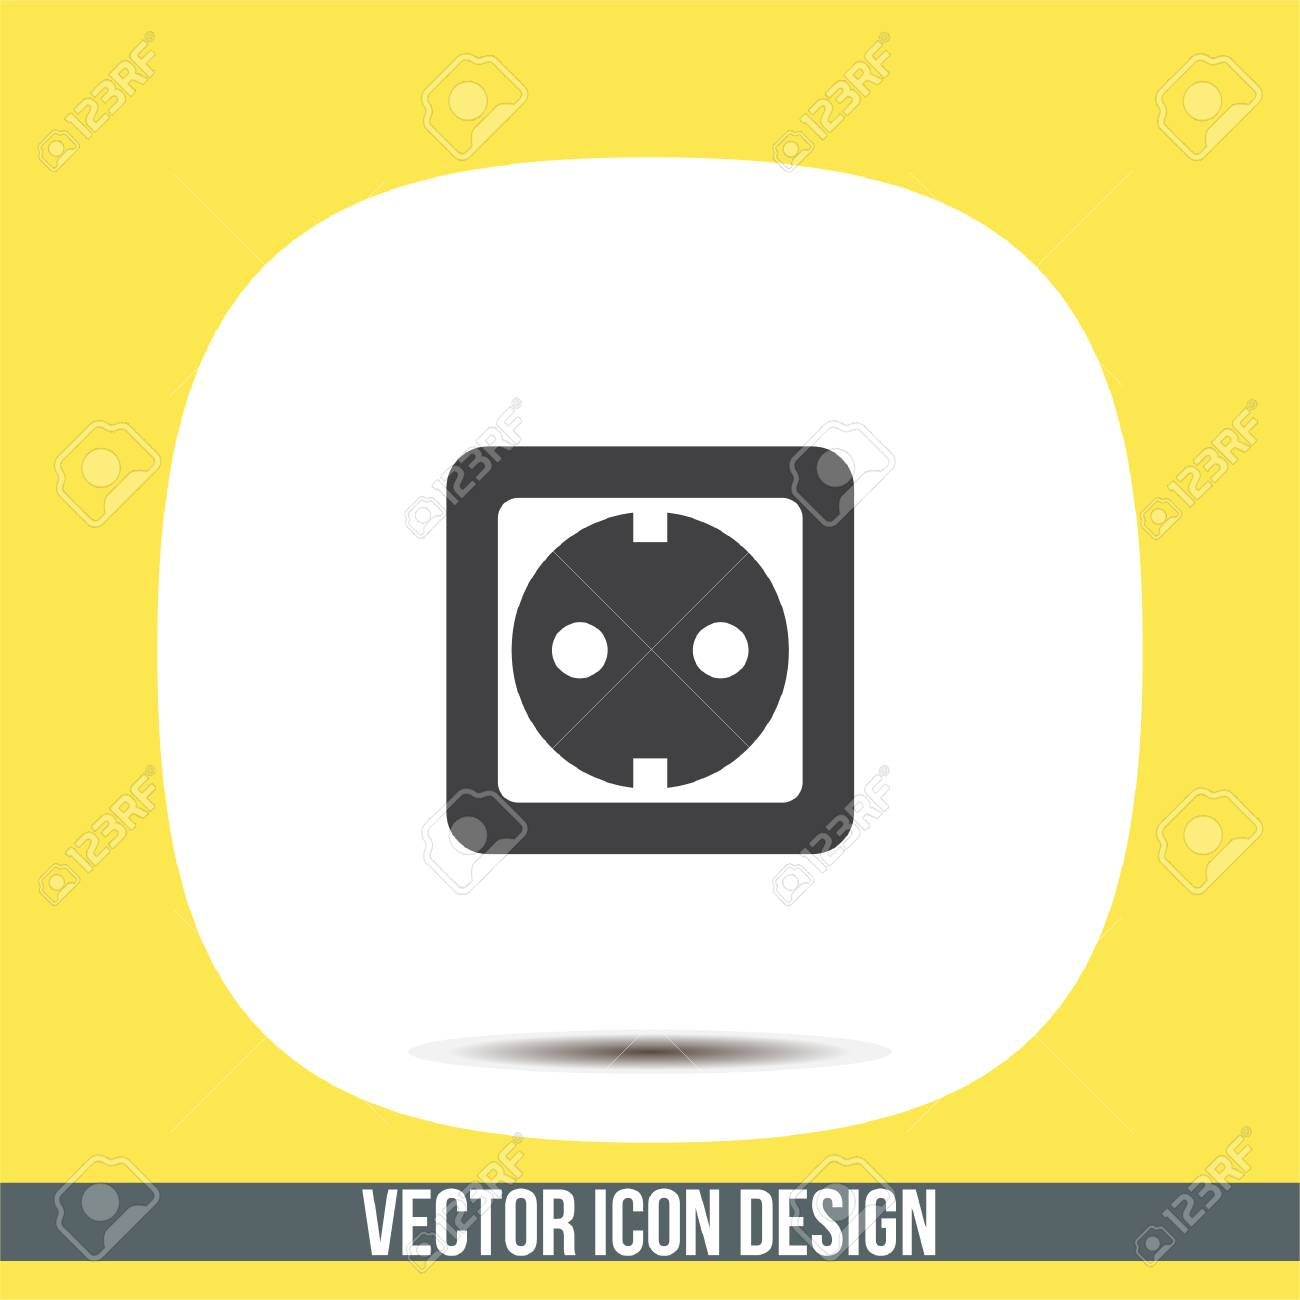 Power Socket Vector Icon Electric Outlet Sign Power Plug Symbol